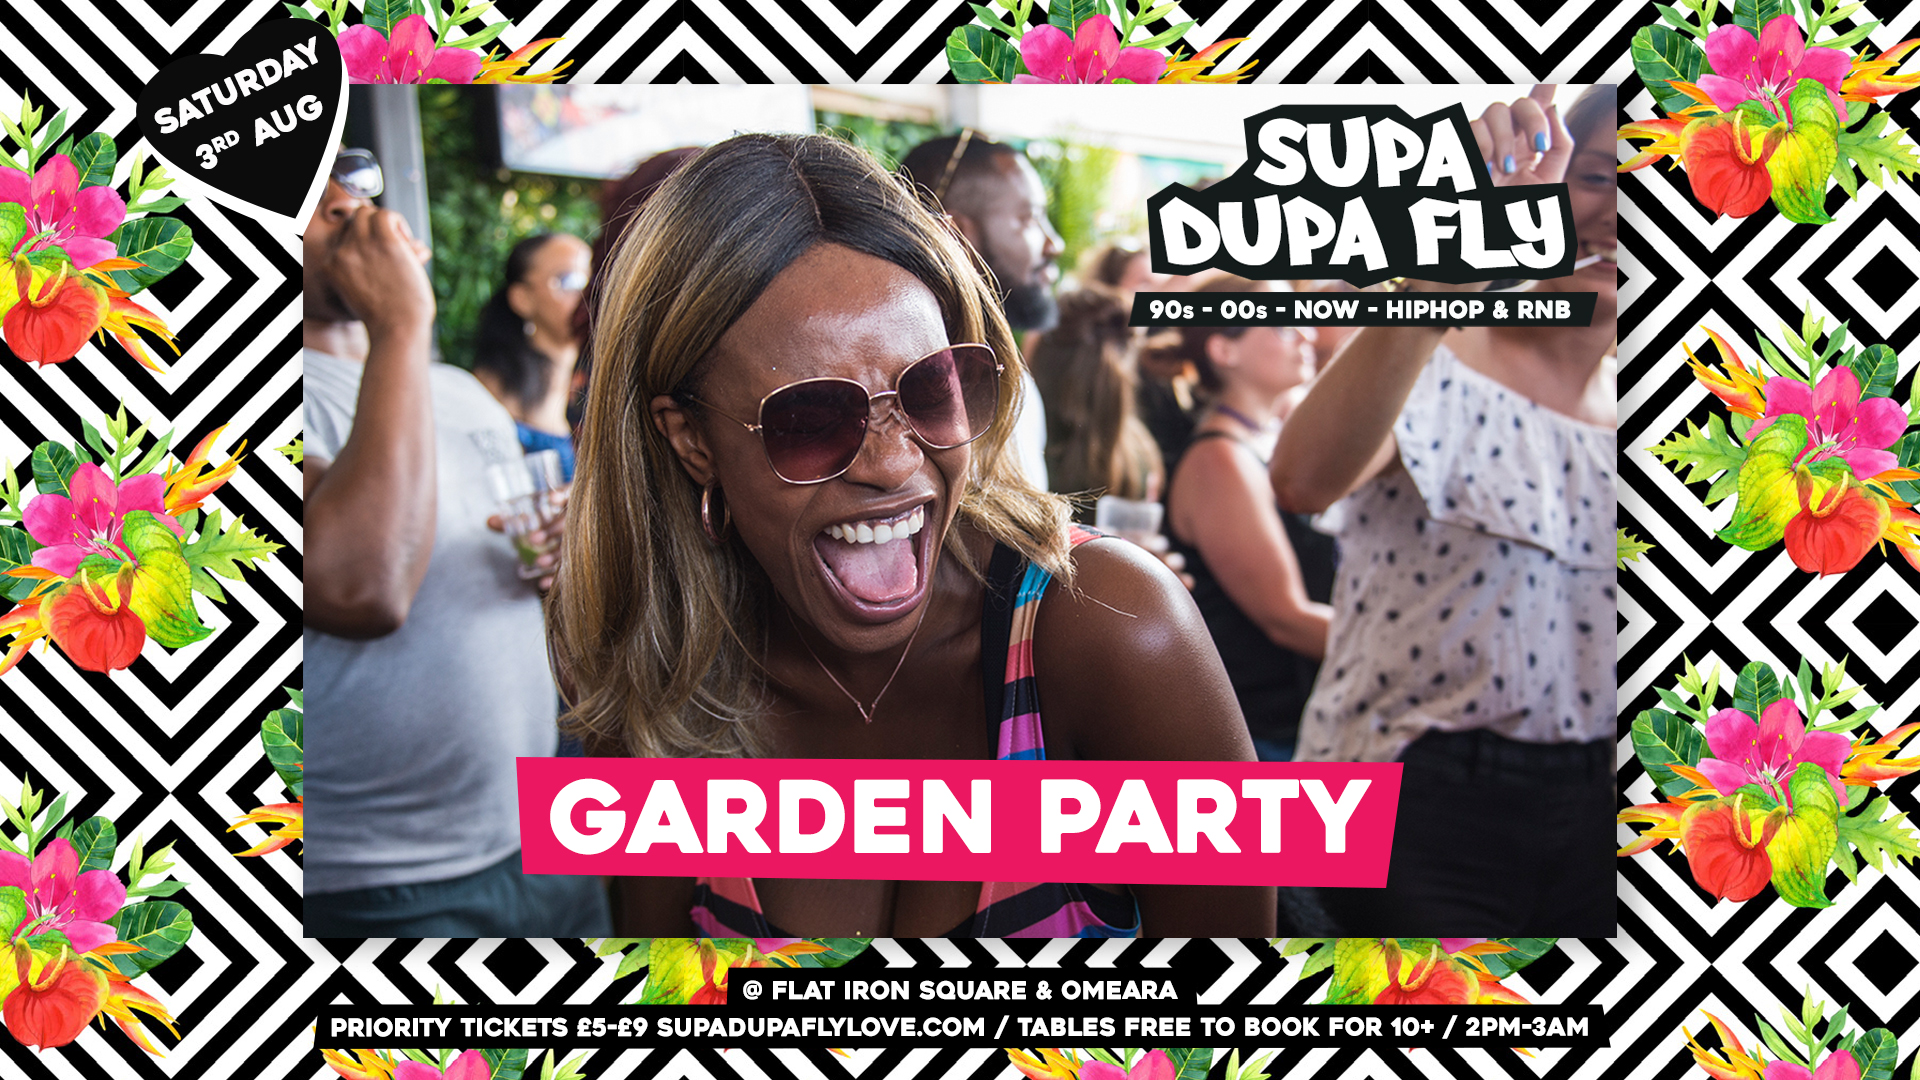 Supa Dupa Fly x Garden Party x Flat Iron Square